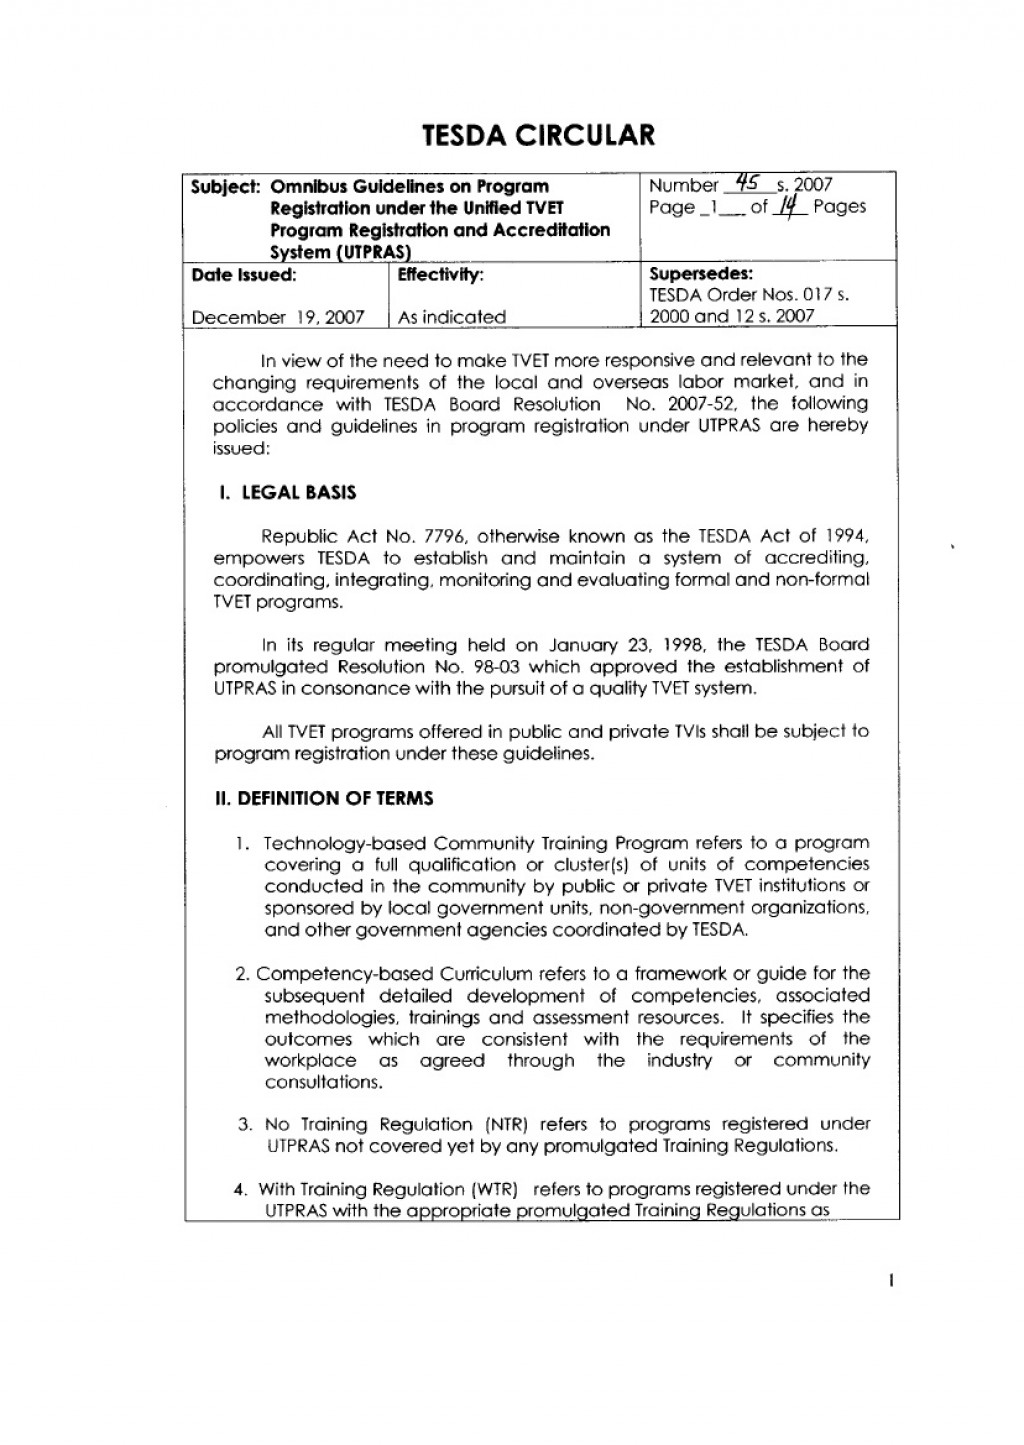 012 Sports Essay Page1 Remarkable Argumentative Examples Related Topics Large